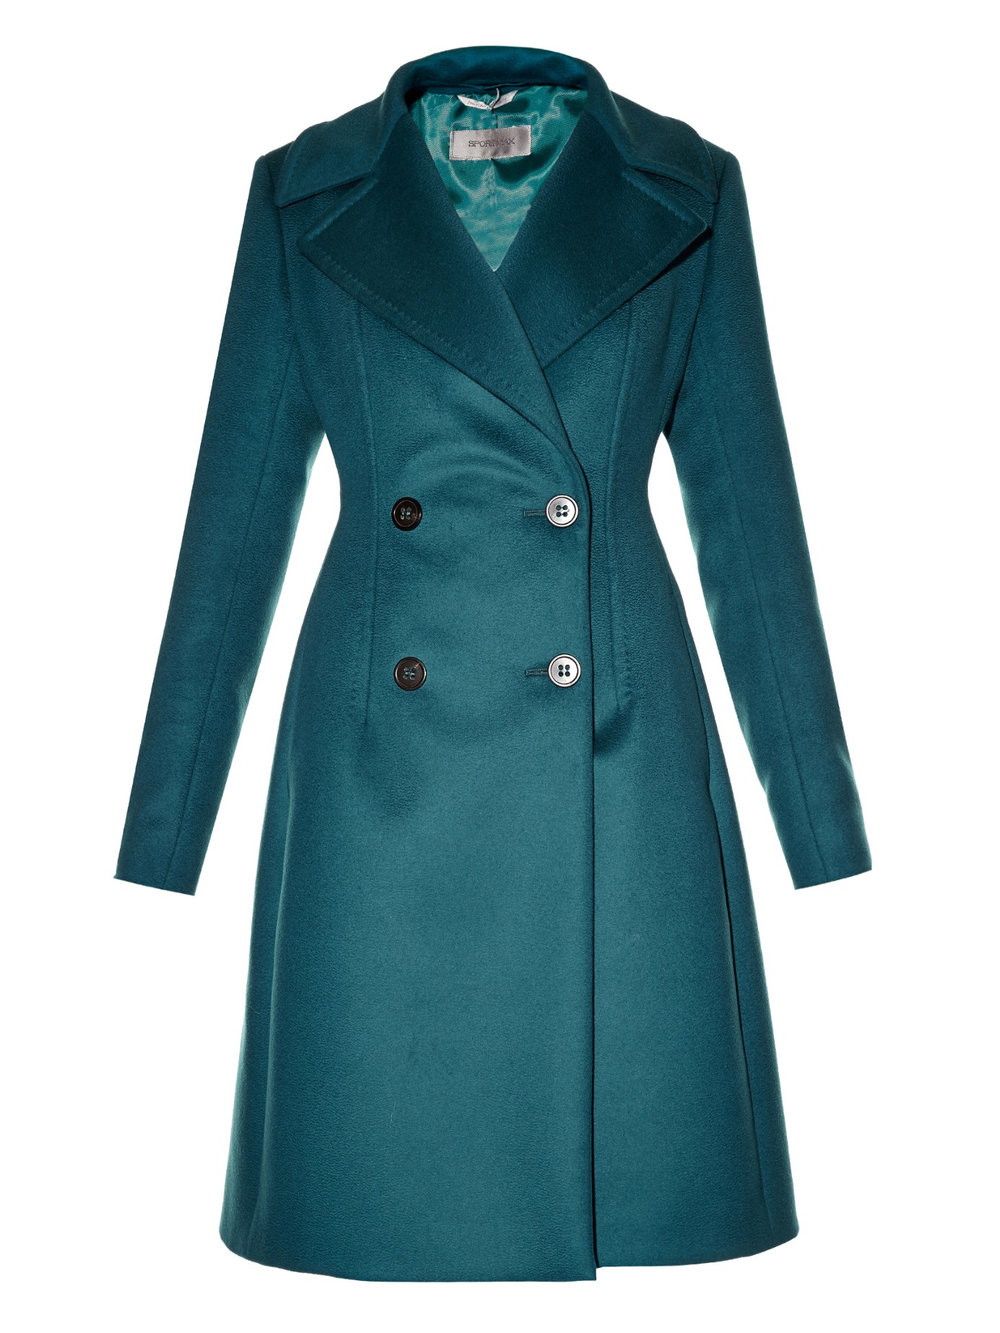 sportmax-mid-blue-maine-coat-blue-product-0-404799633-normal.jpeg